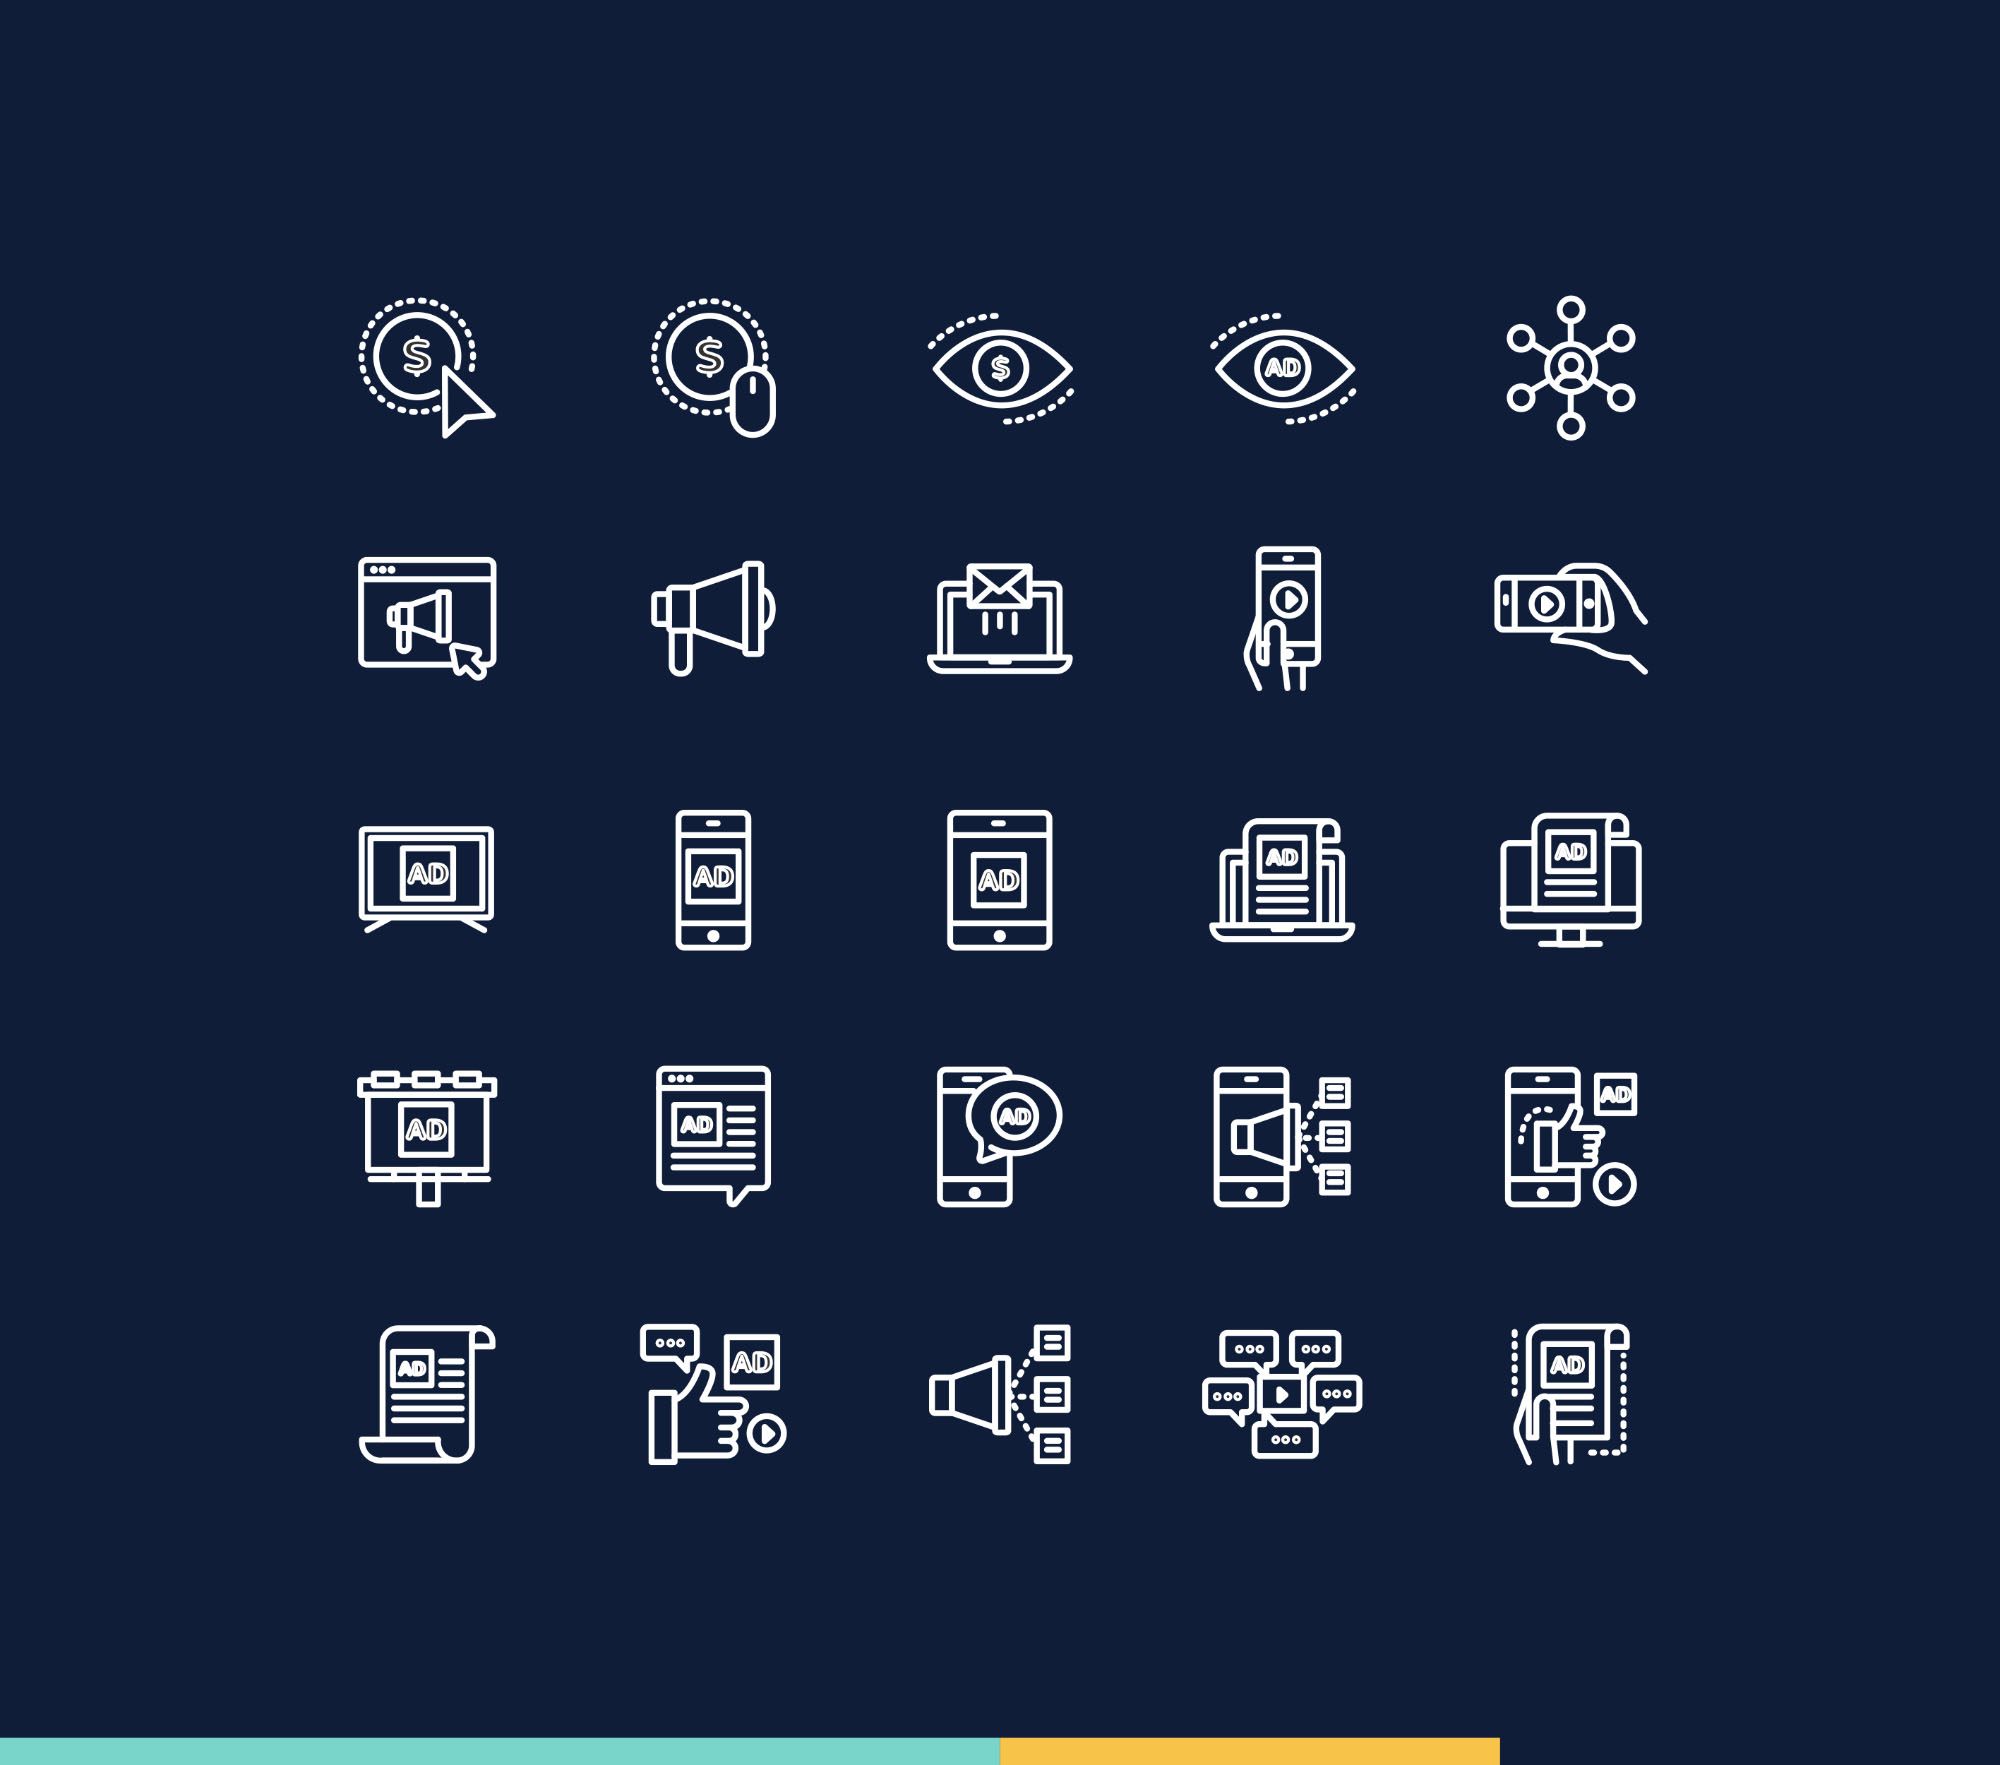 Digital Marketing Icons - Colored